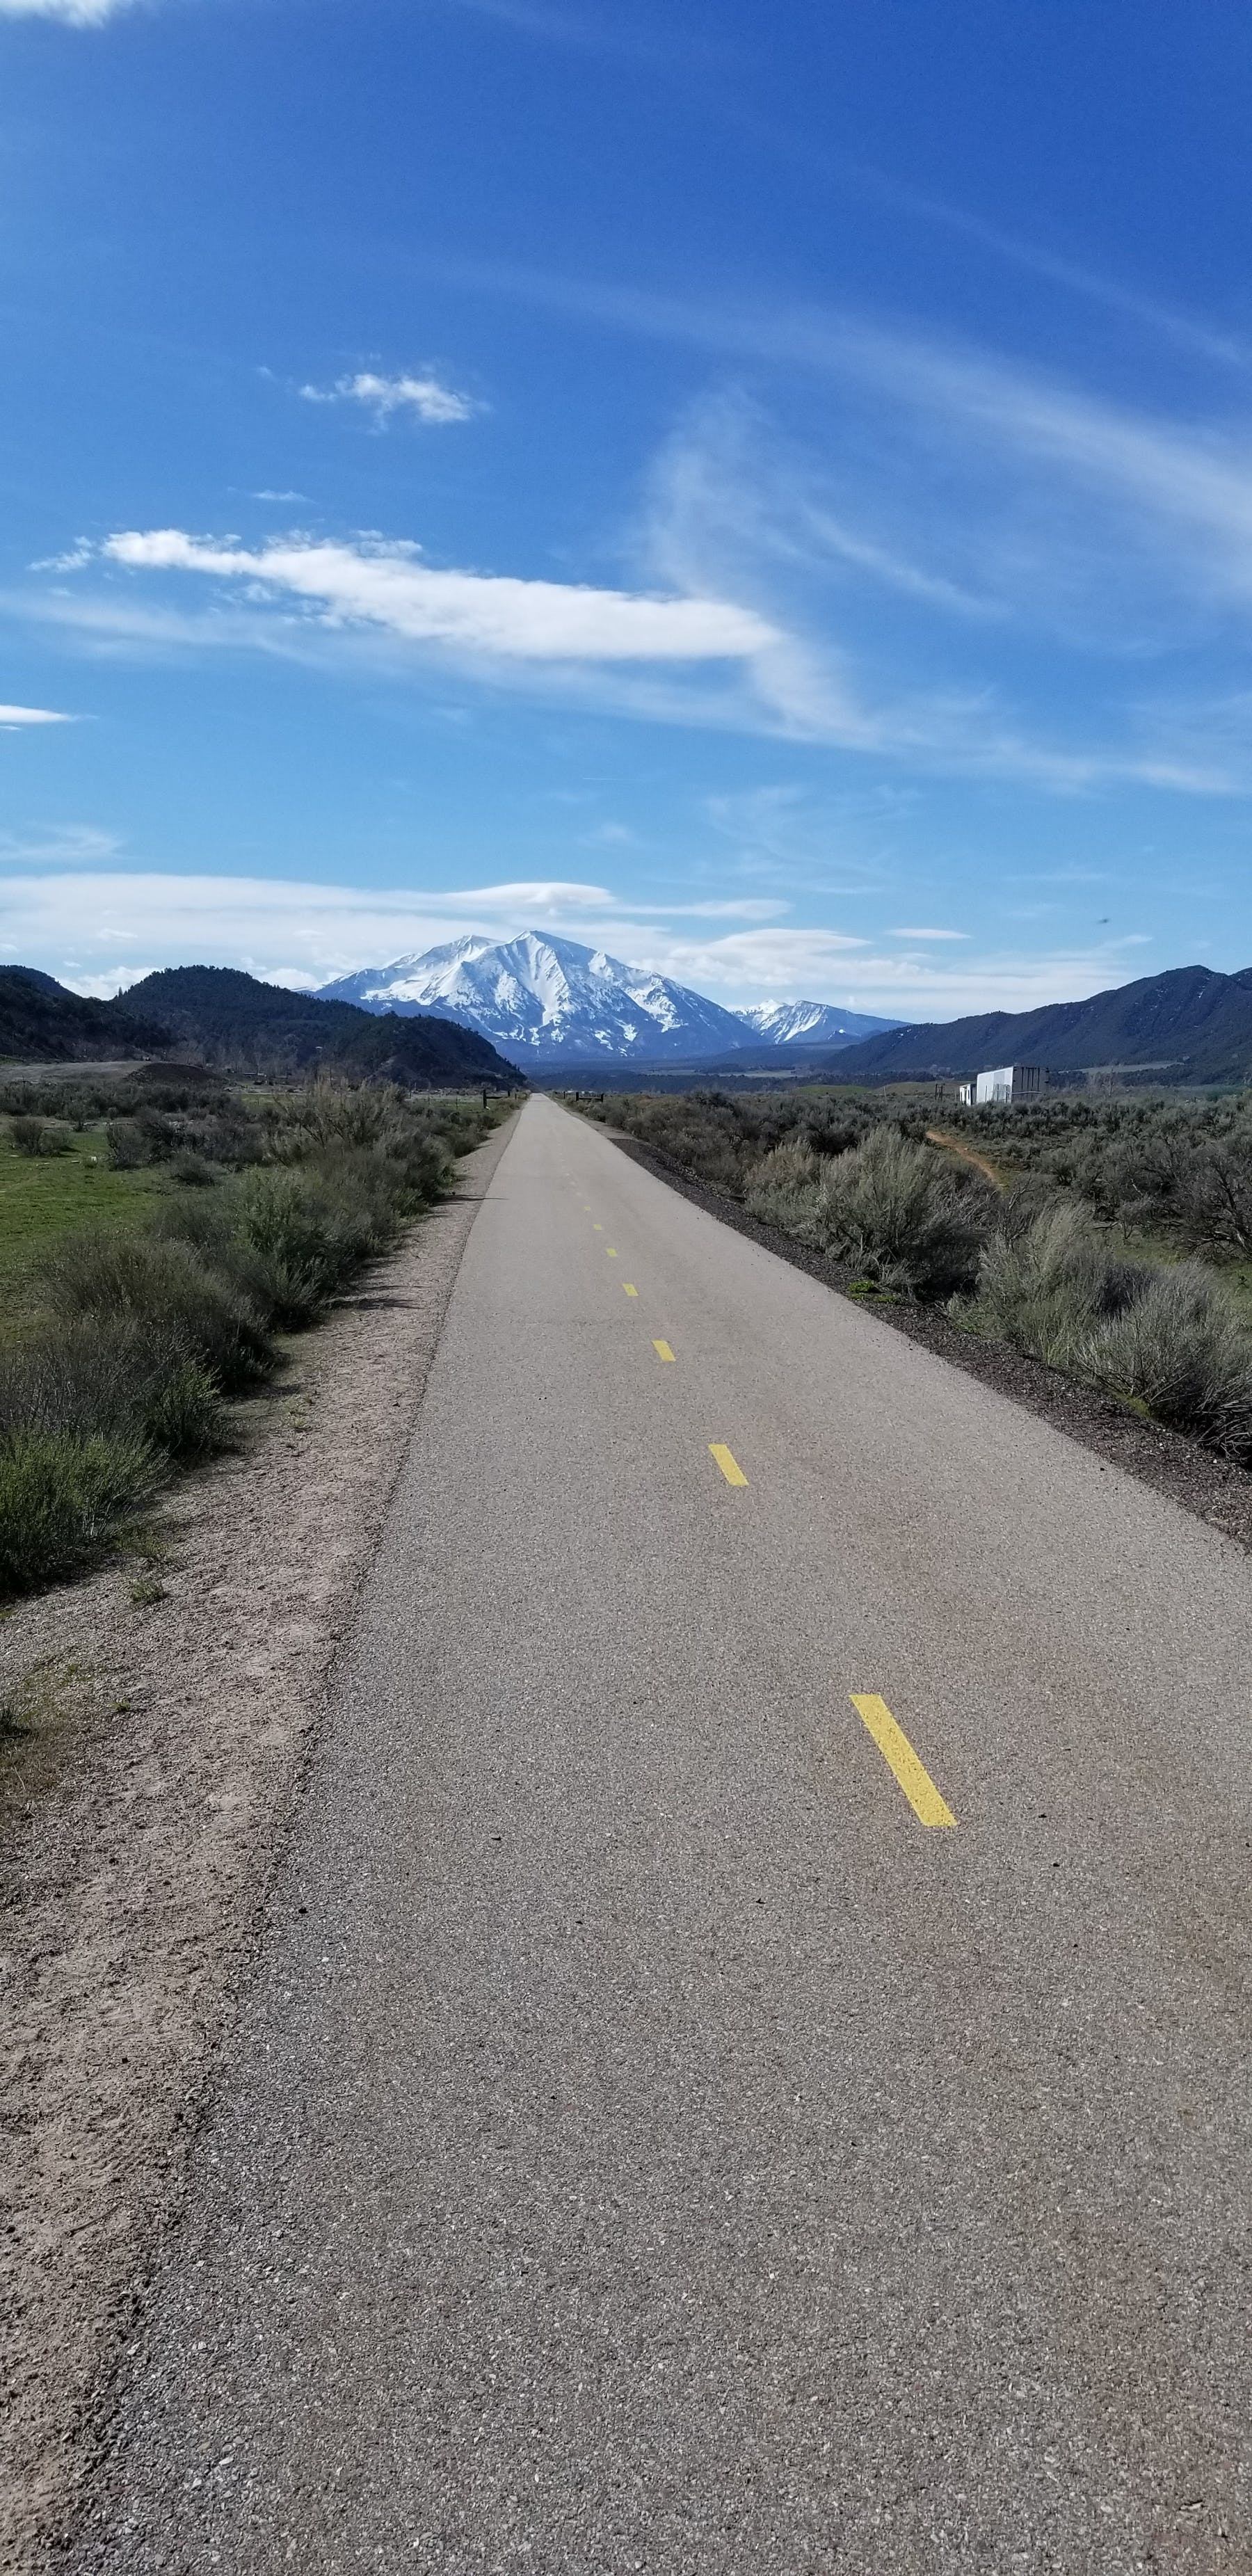 an empty road with a mountain in the background